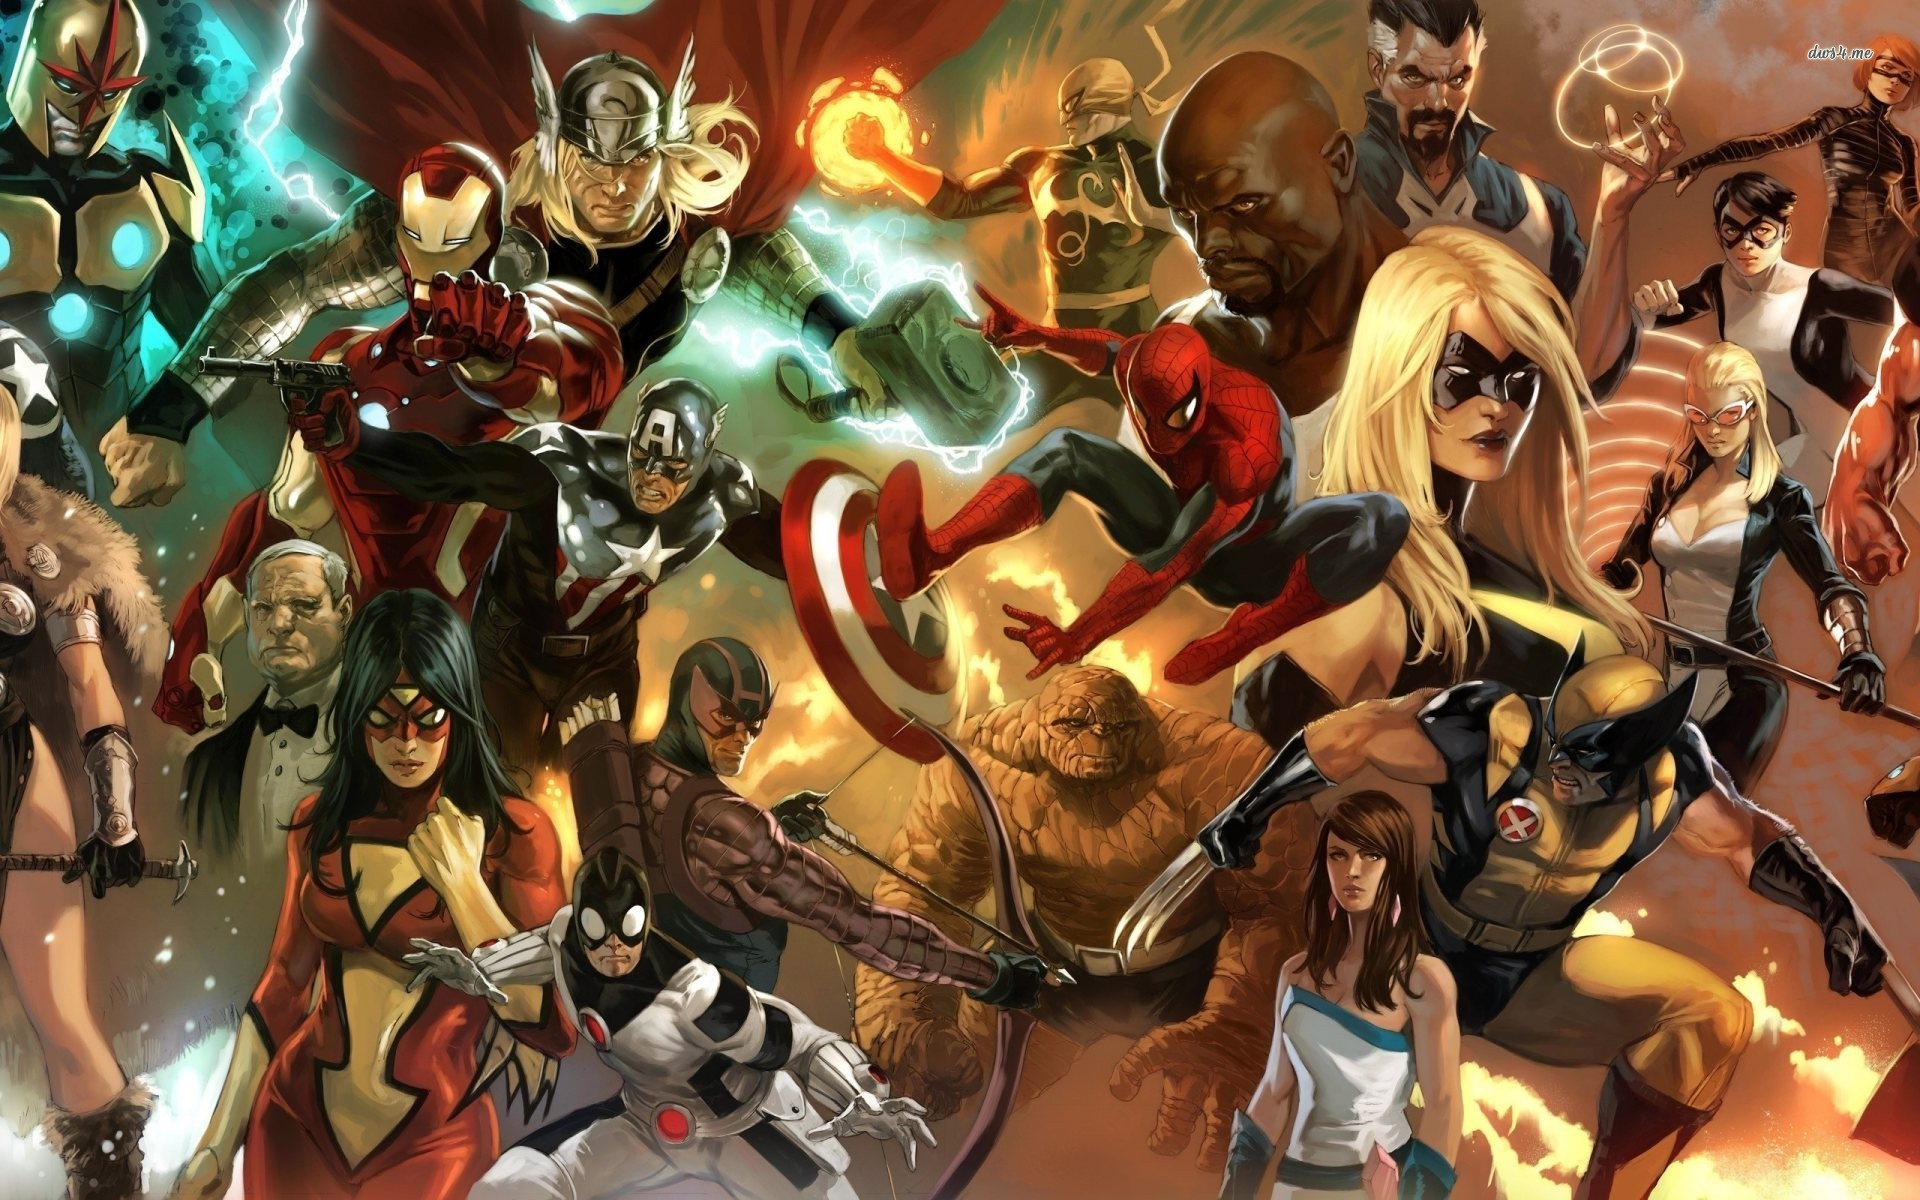 Res: 1920x1200, Awesome Marvel Heroes Images Collection: Marvel Heroes Wallpapers